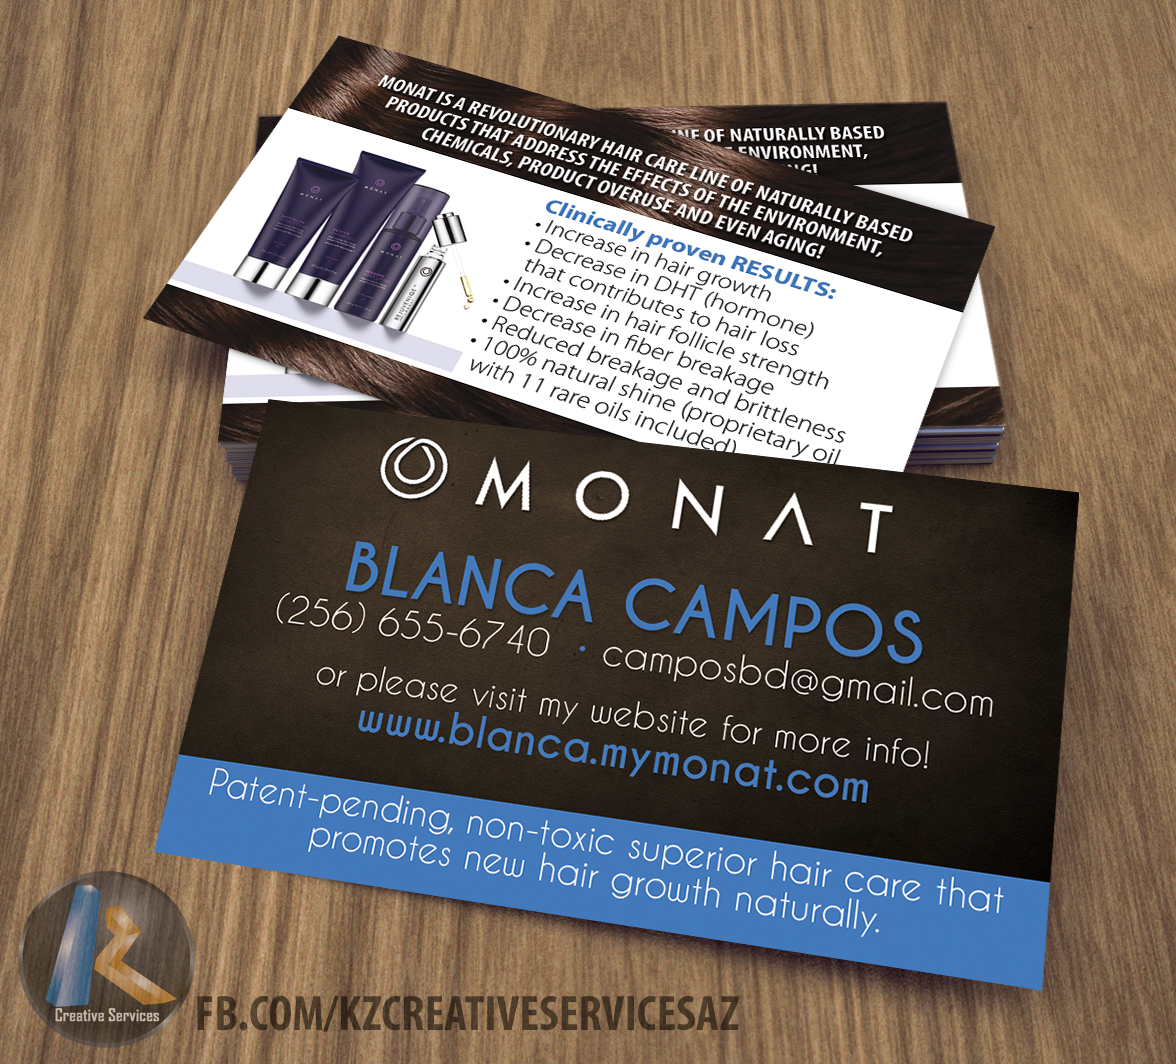 Monat business cards style 2 kz creative services online store monat business cards style 2 colourmoves